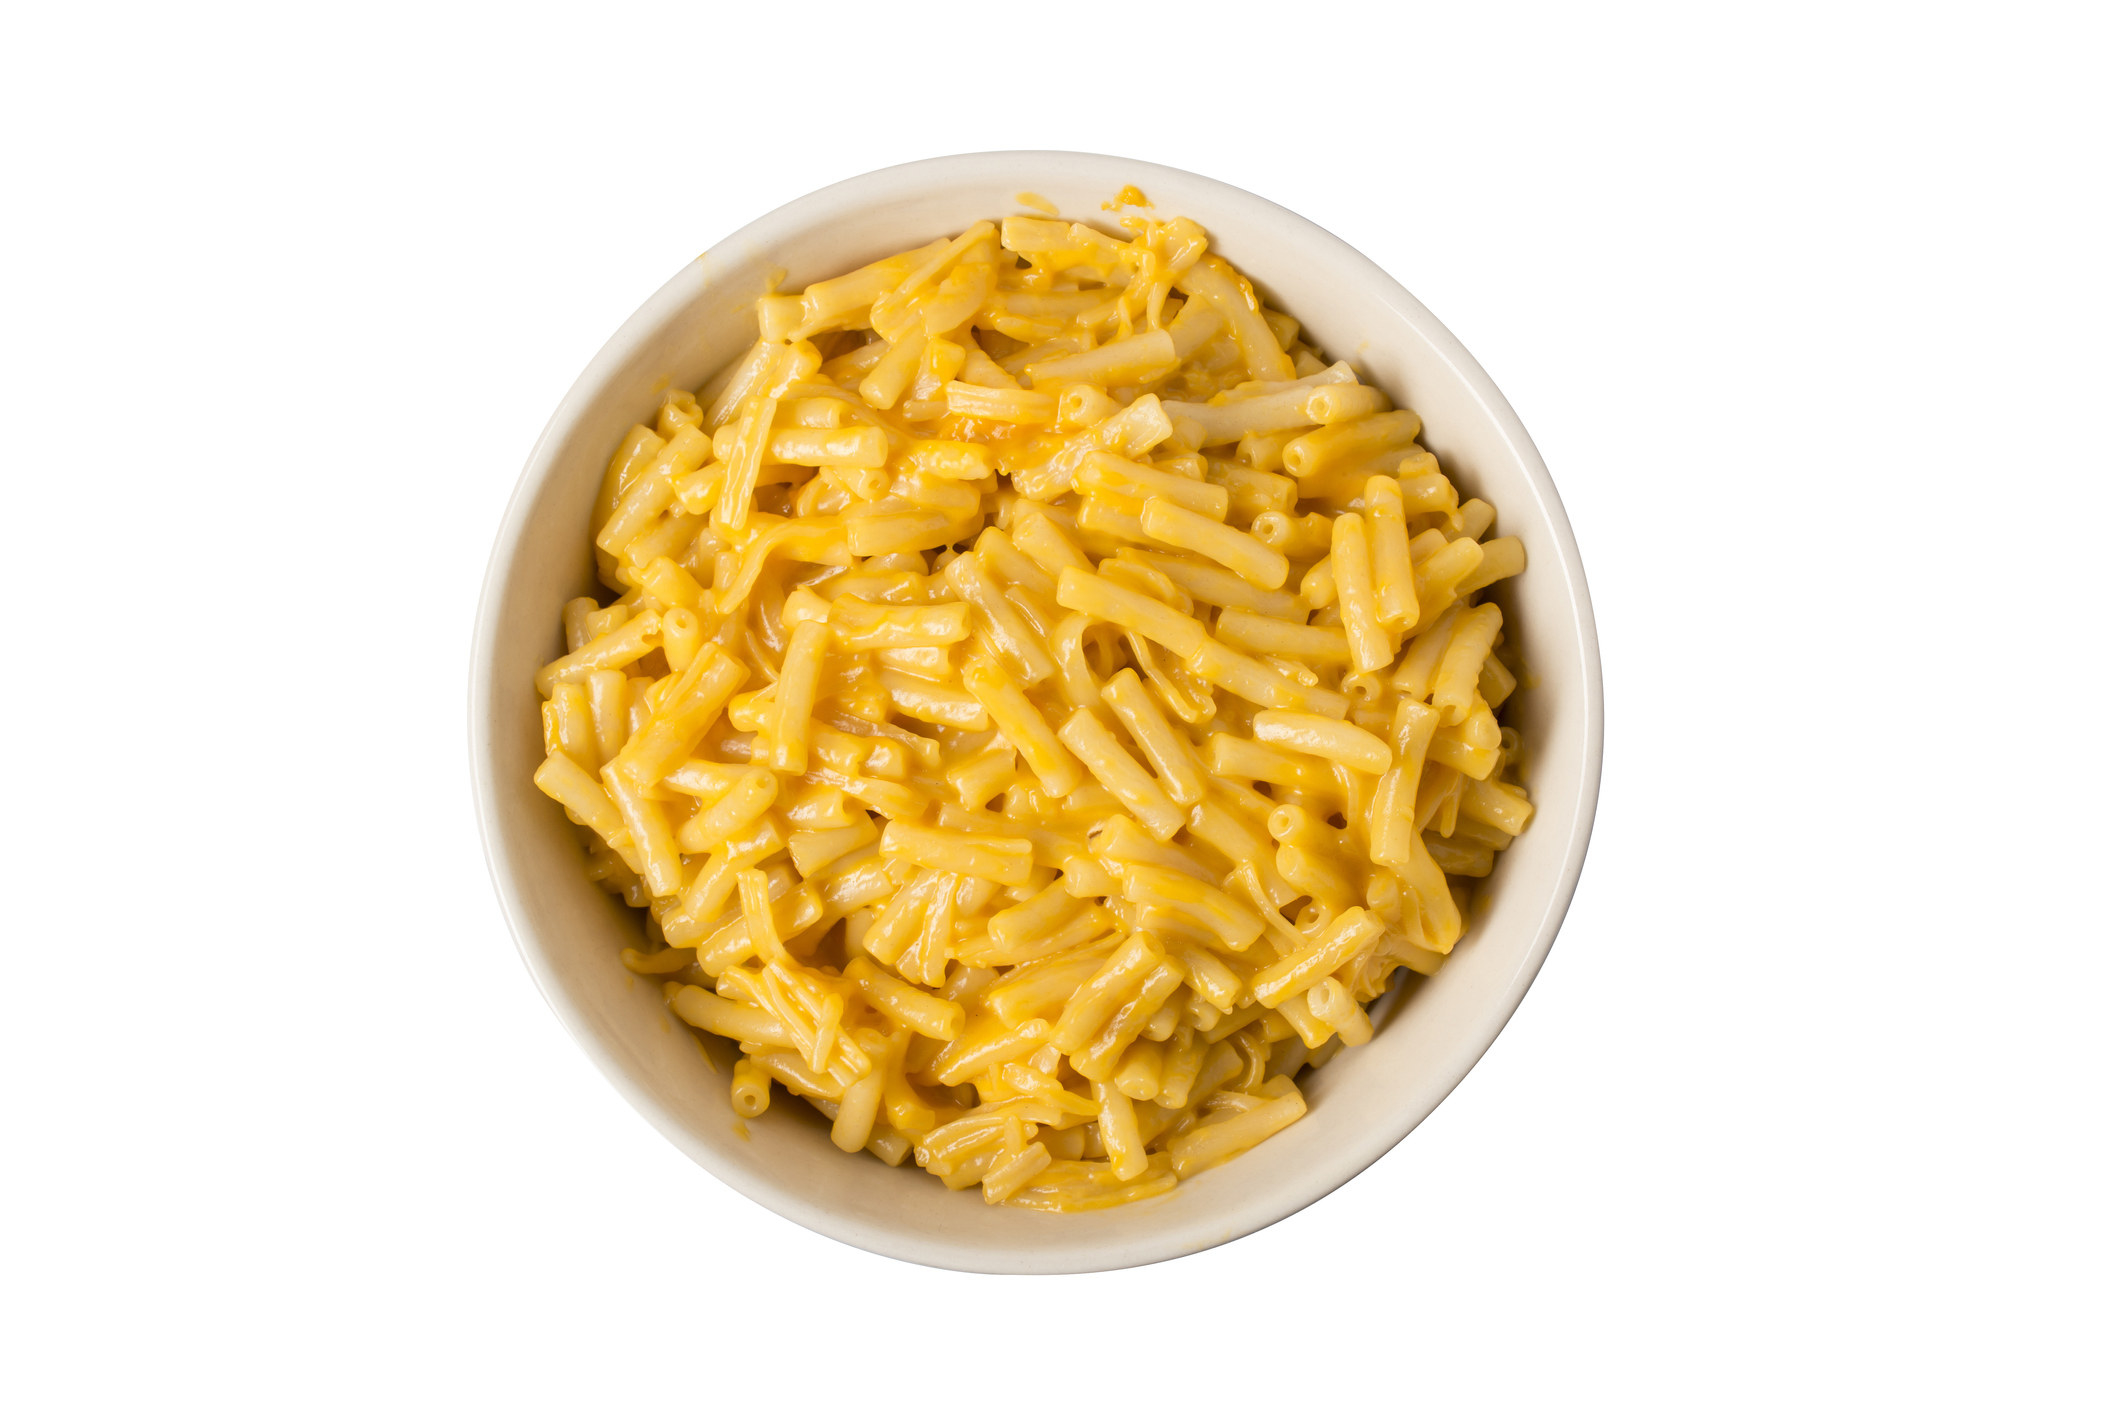 A bowl of boxed mac 'n' cheese.